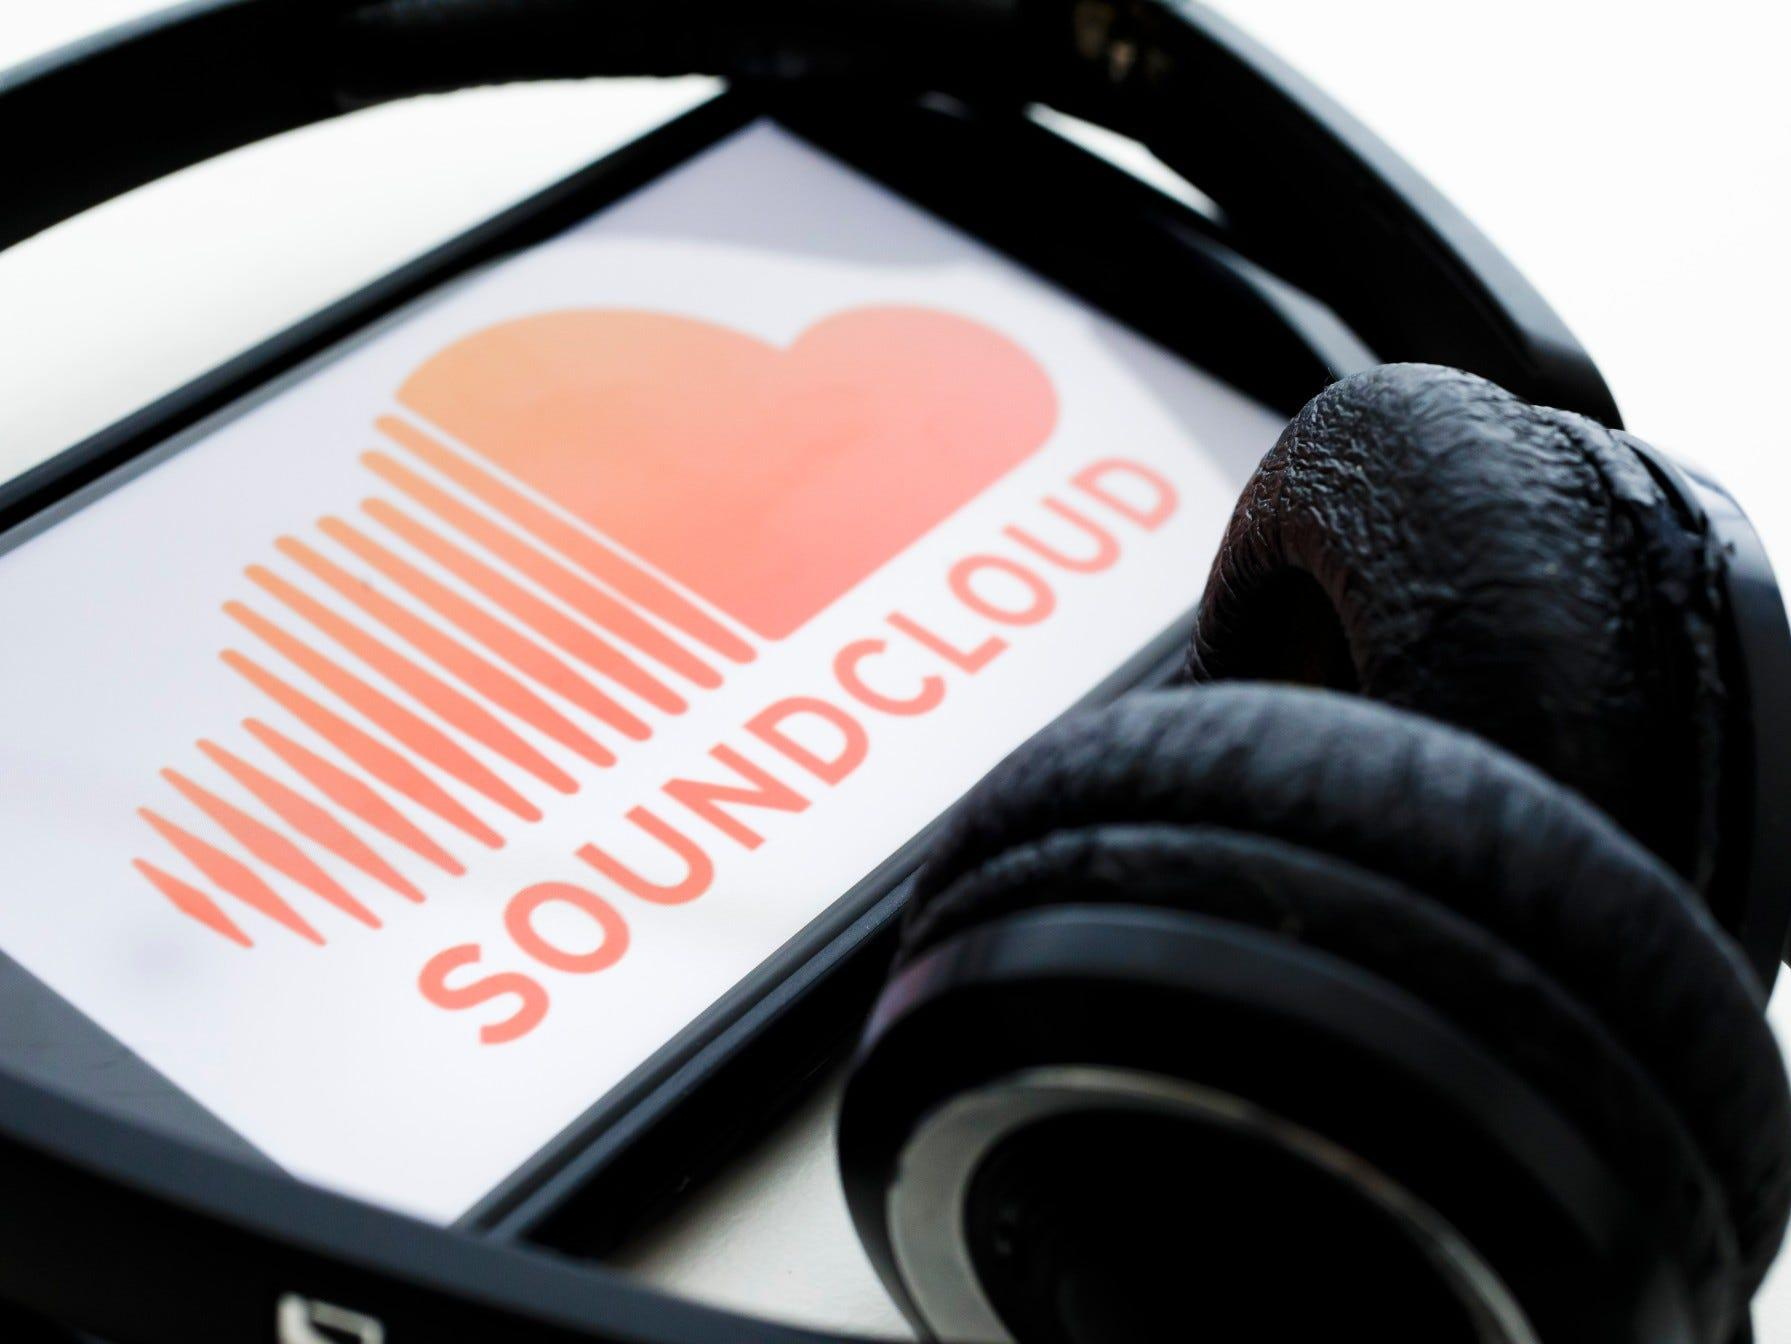 What Is Soundcloud Everything You Need To Know About The Music And Podcast Platform